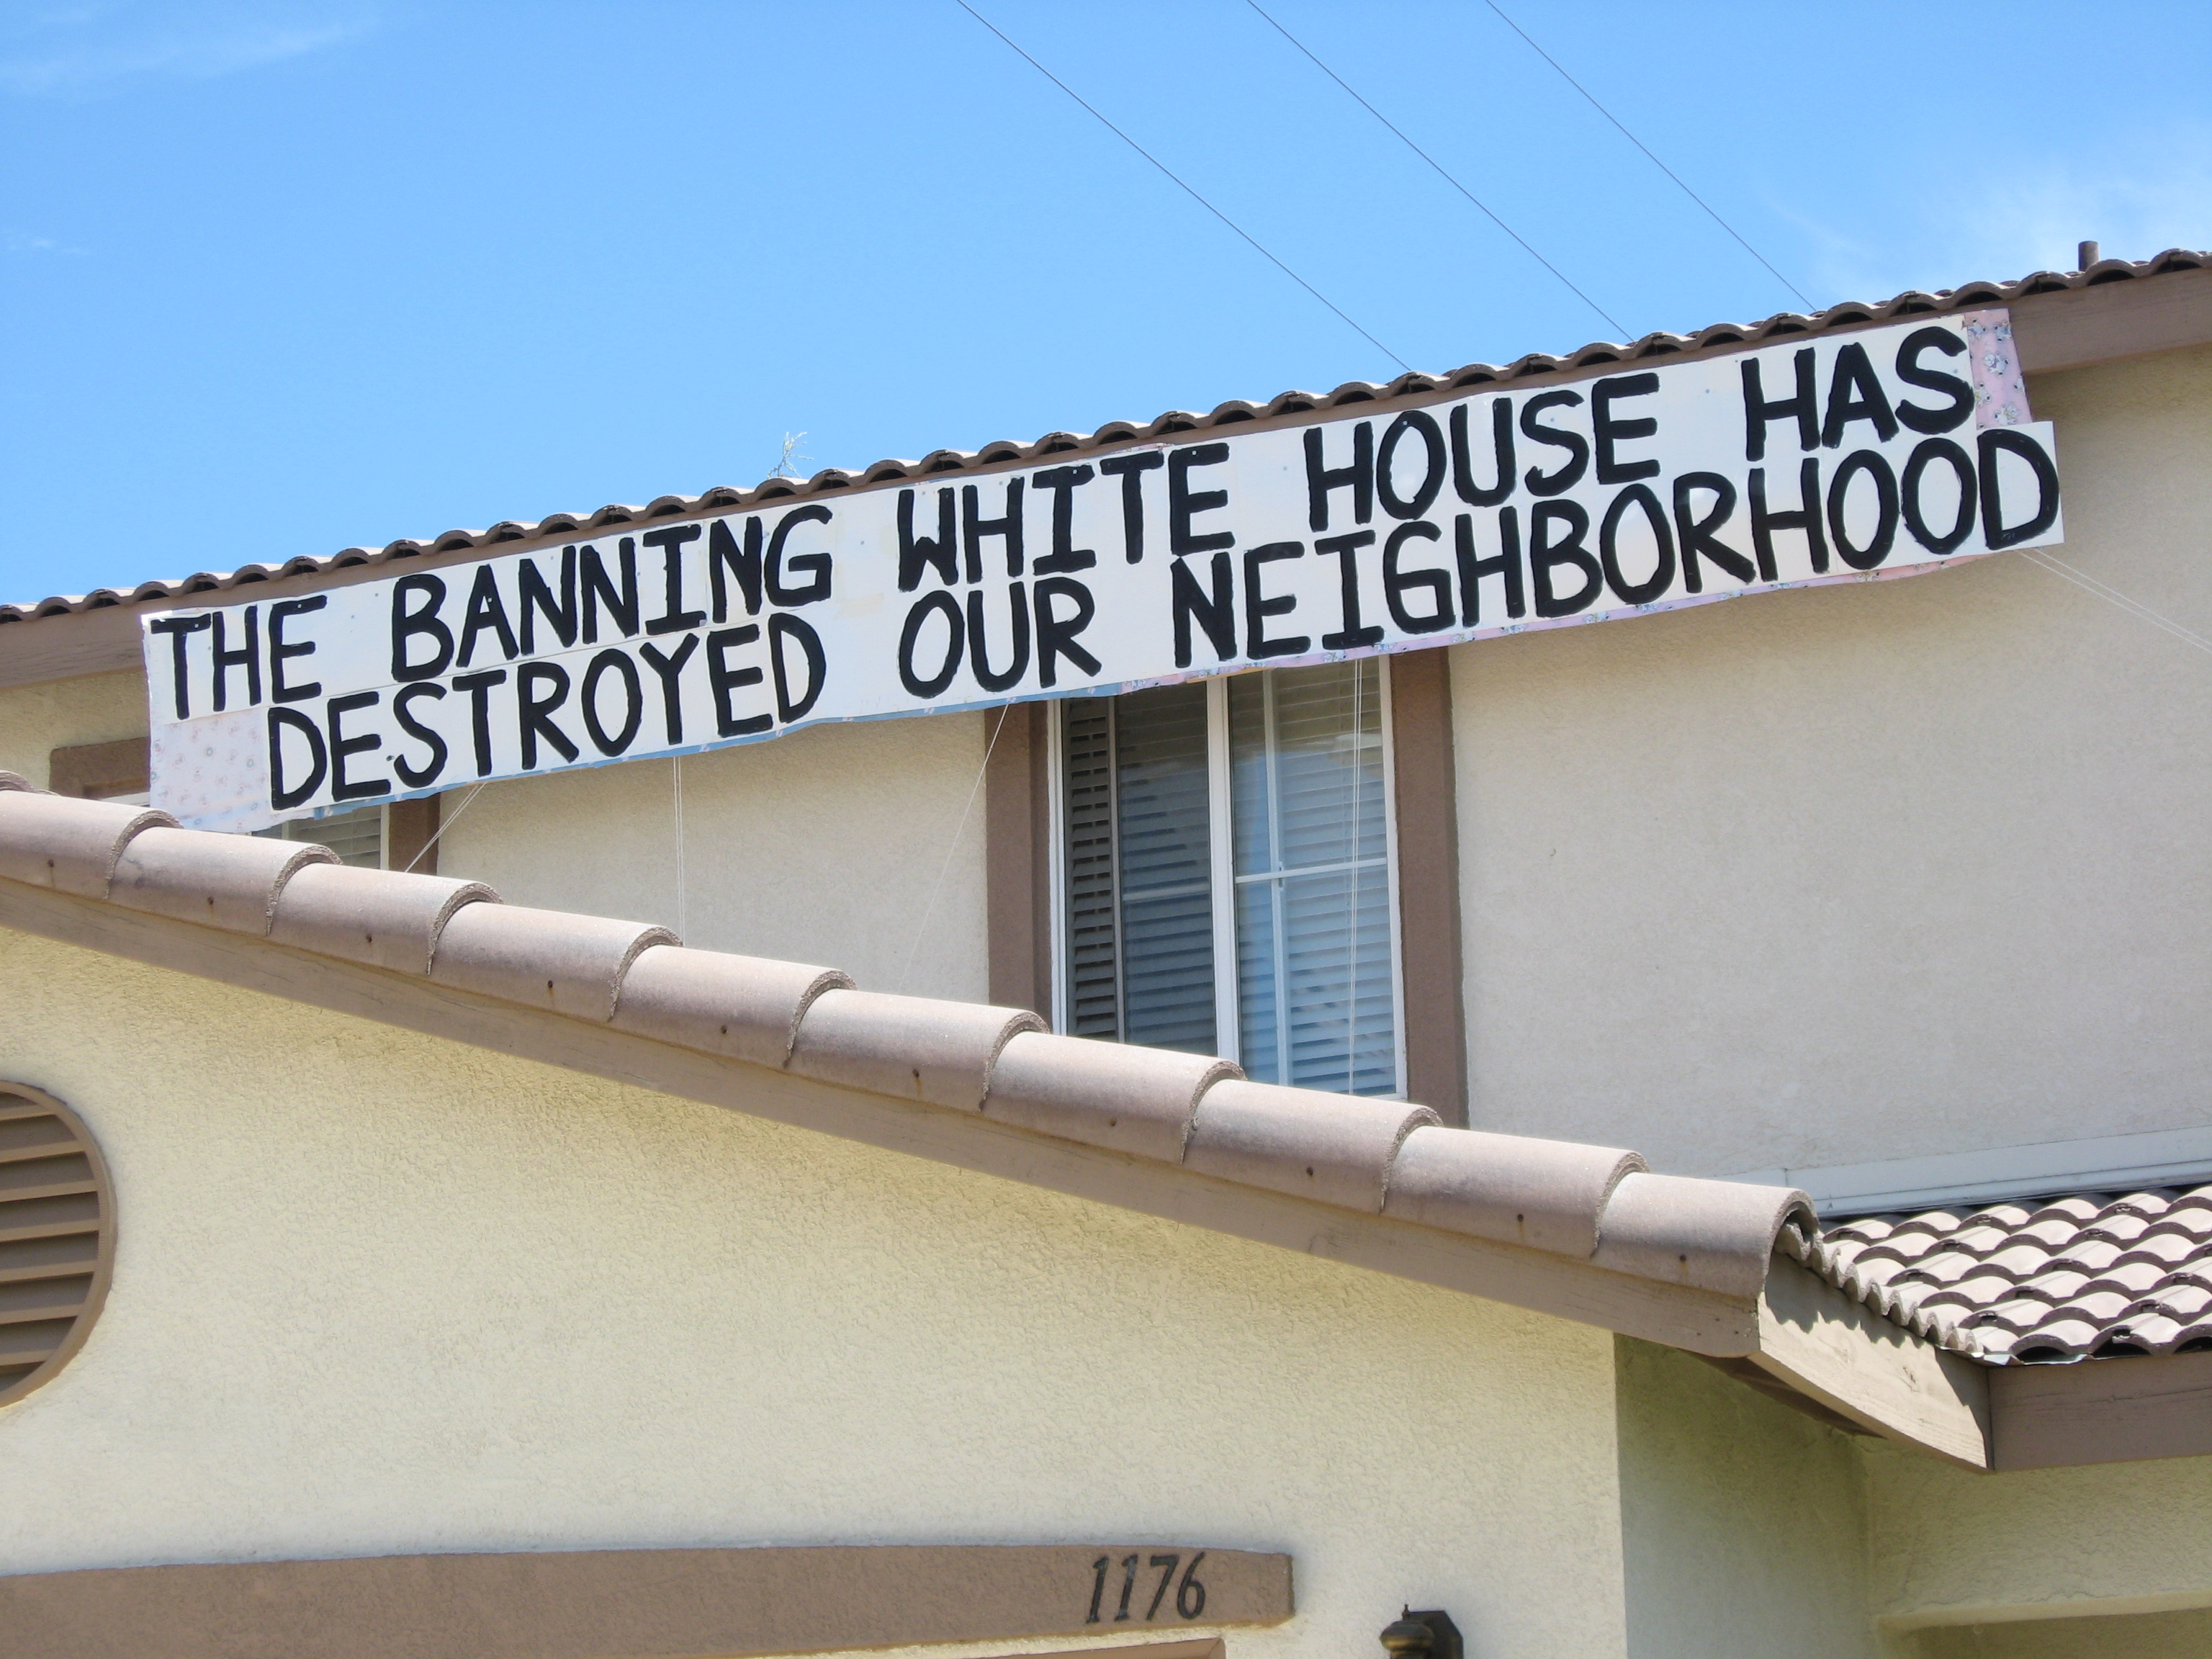 The Banning White House Has Destroyed Our Neighborhood